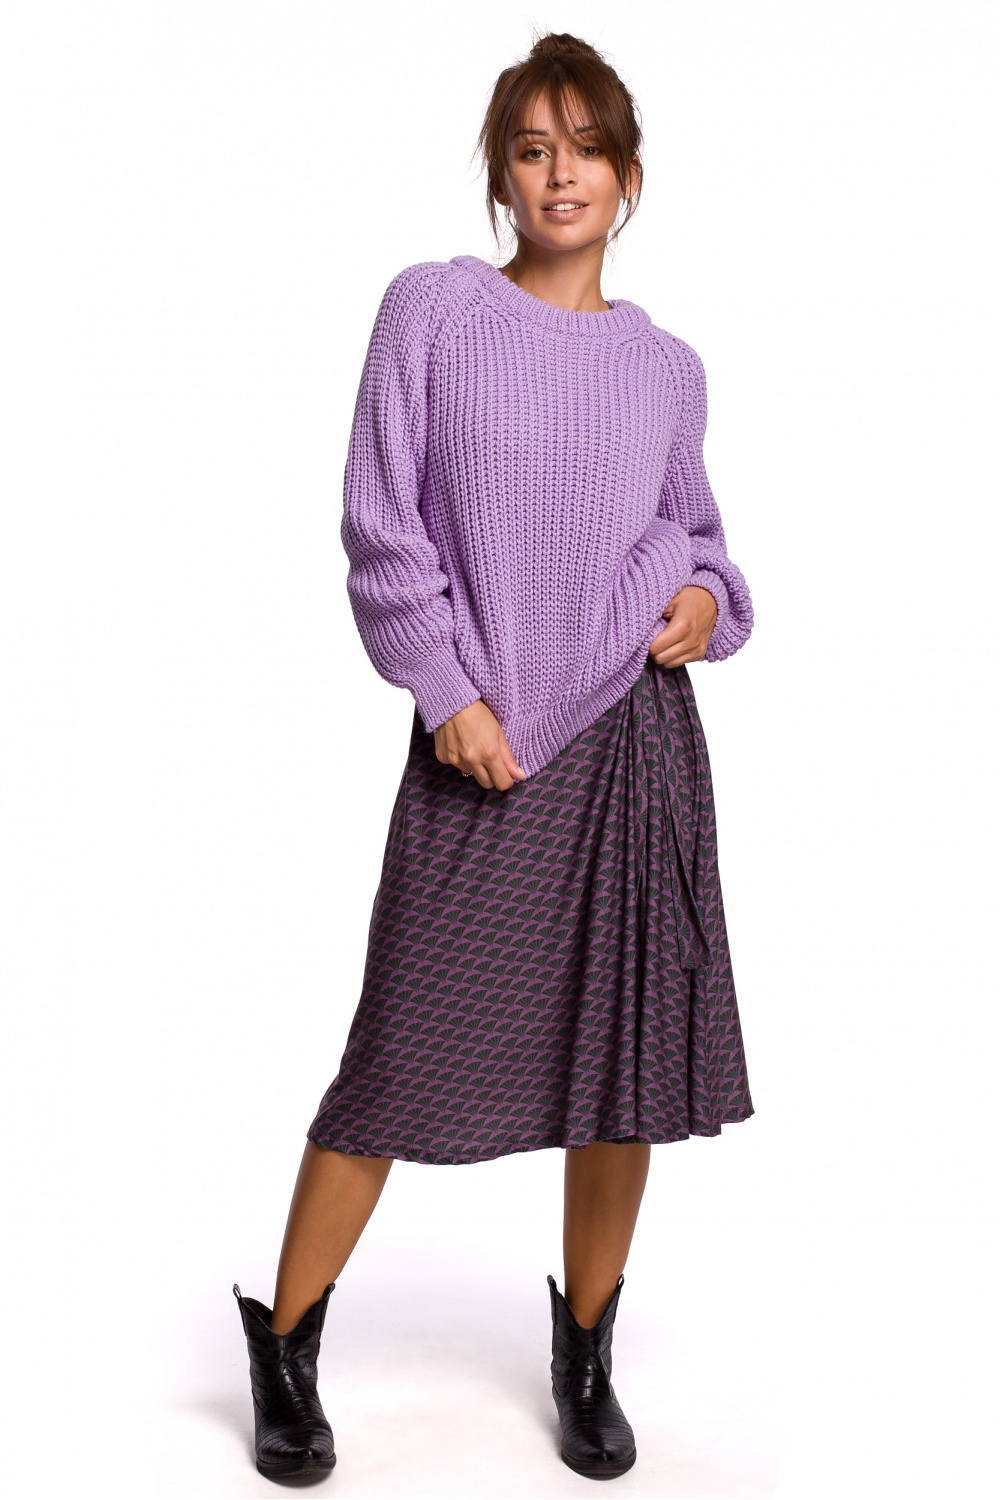 Pulover model 148281 BE Knit